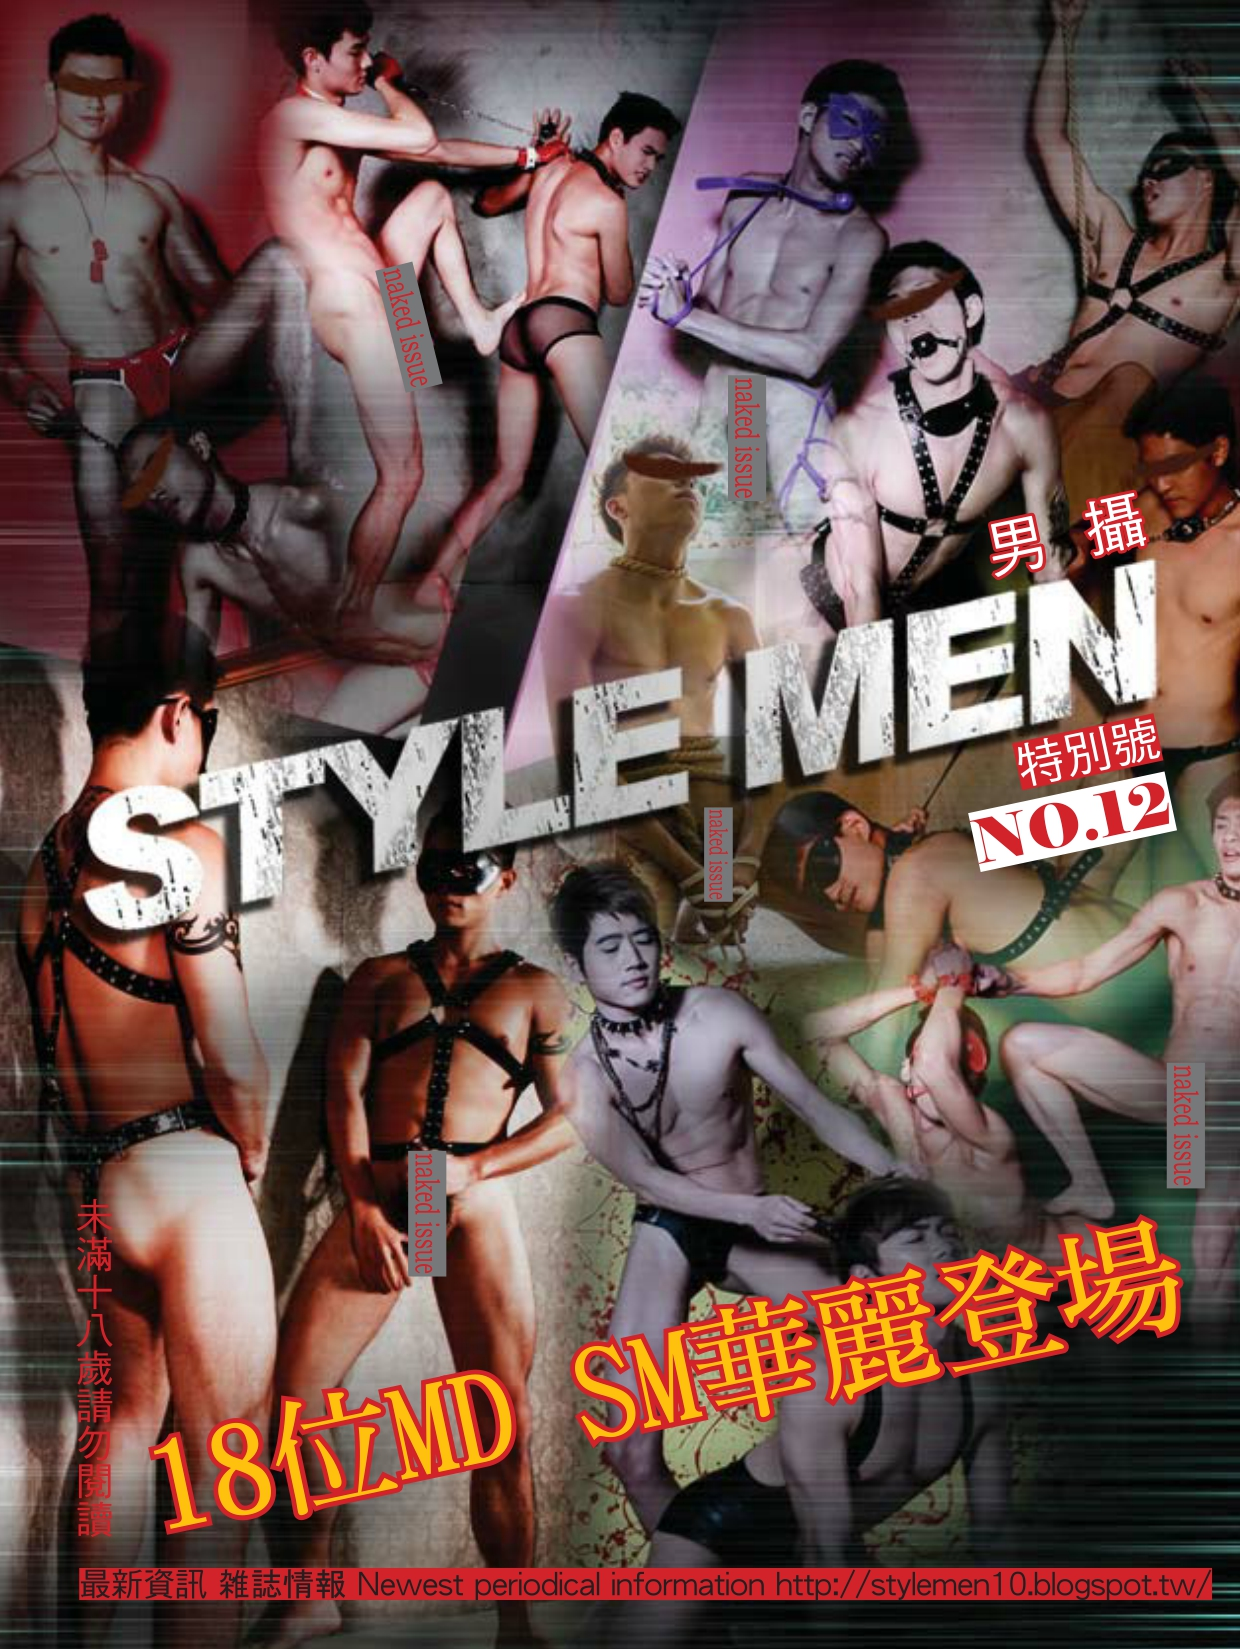 Style Men 12 妄攝NO.12 俊鎬 : New A So